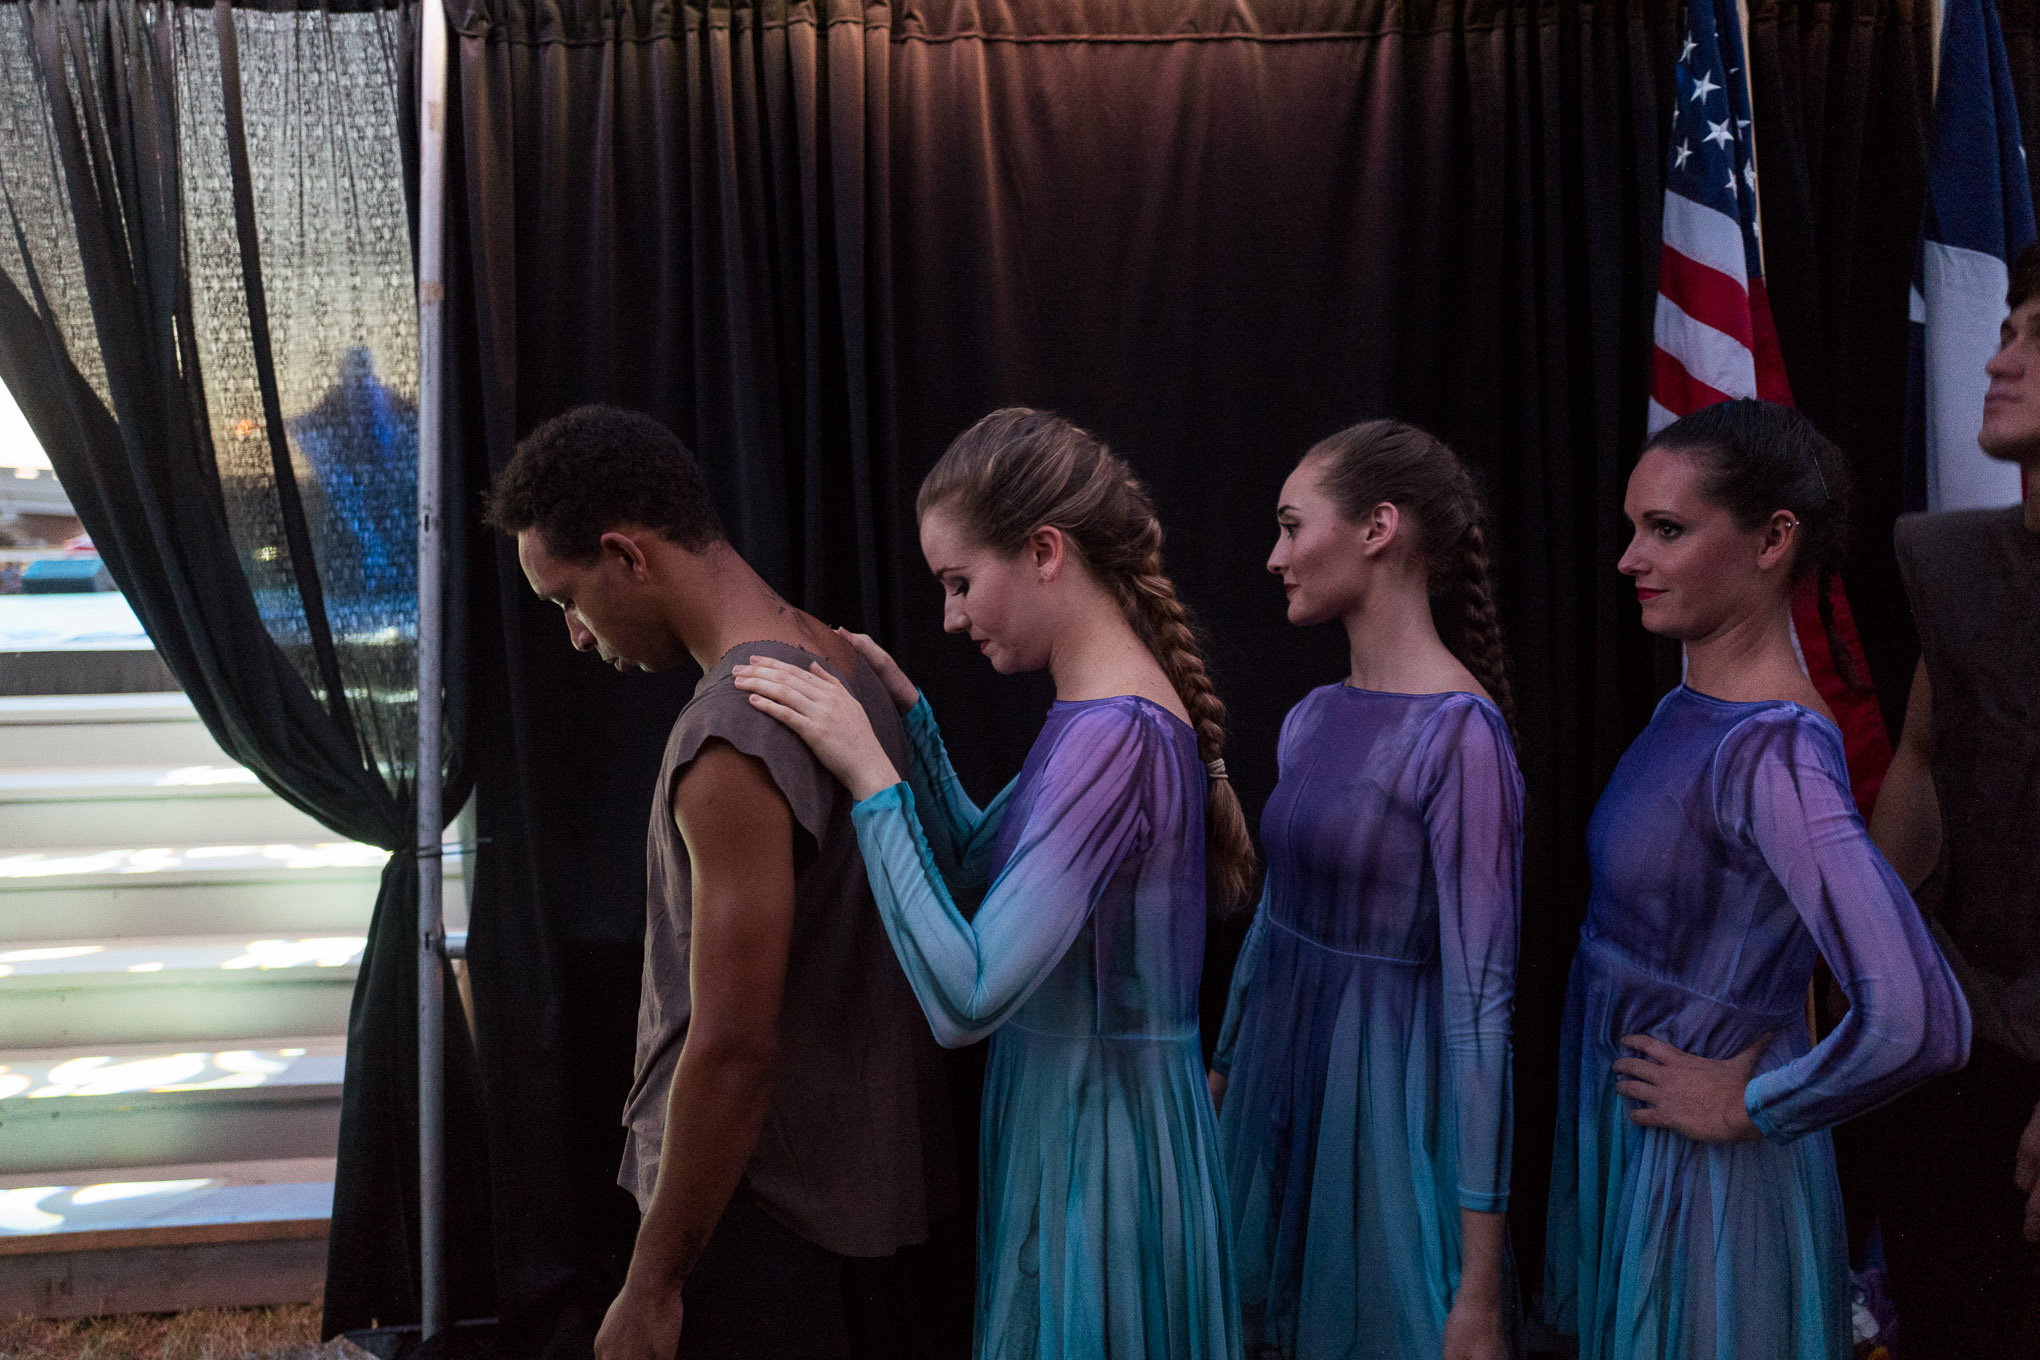 Dancers from Ballet San Antonio prepare themselves just before they take the stage. Photo by Scott Ball.